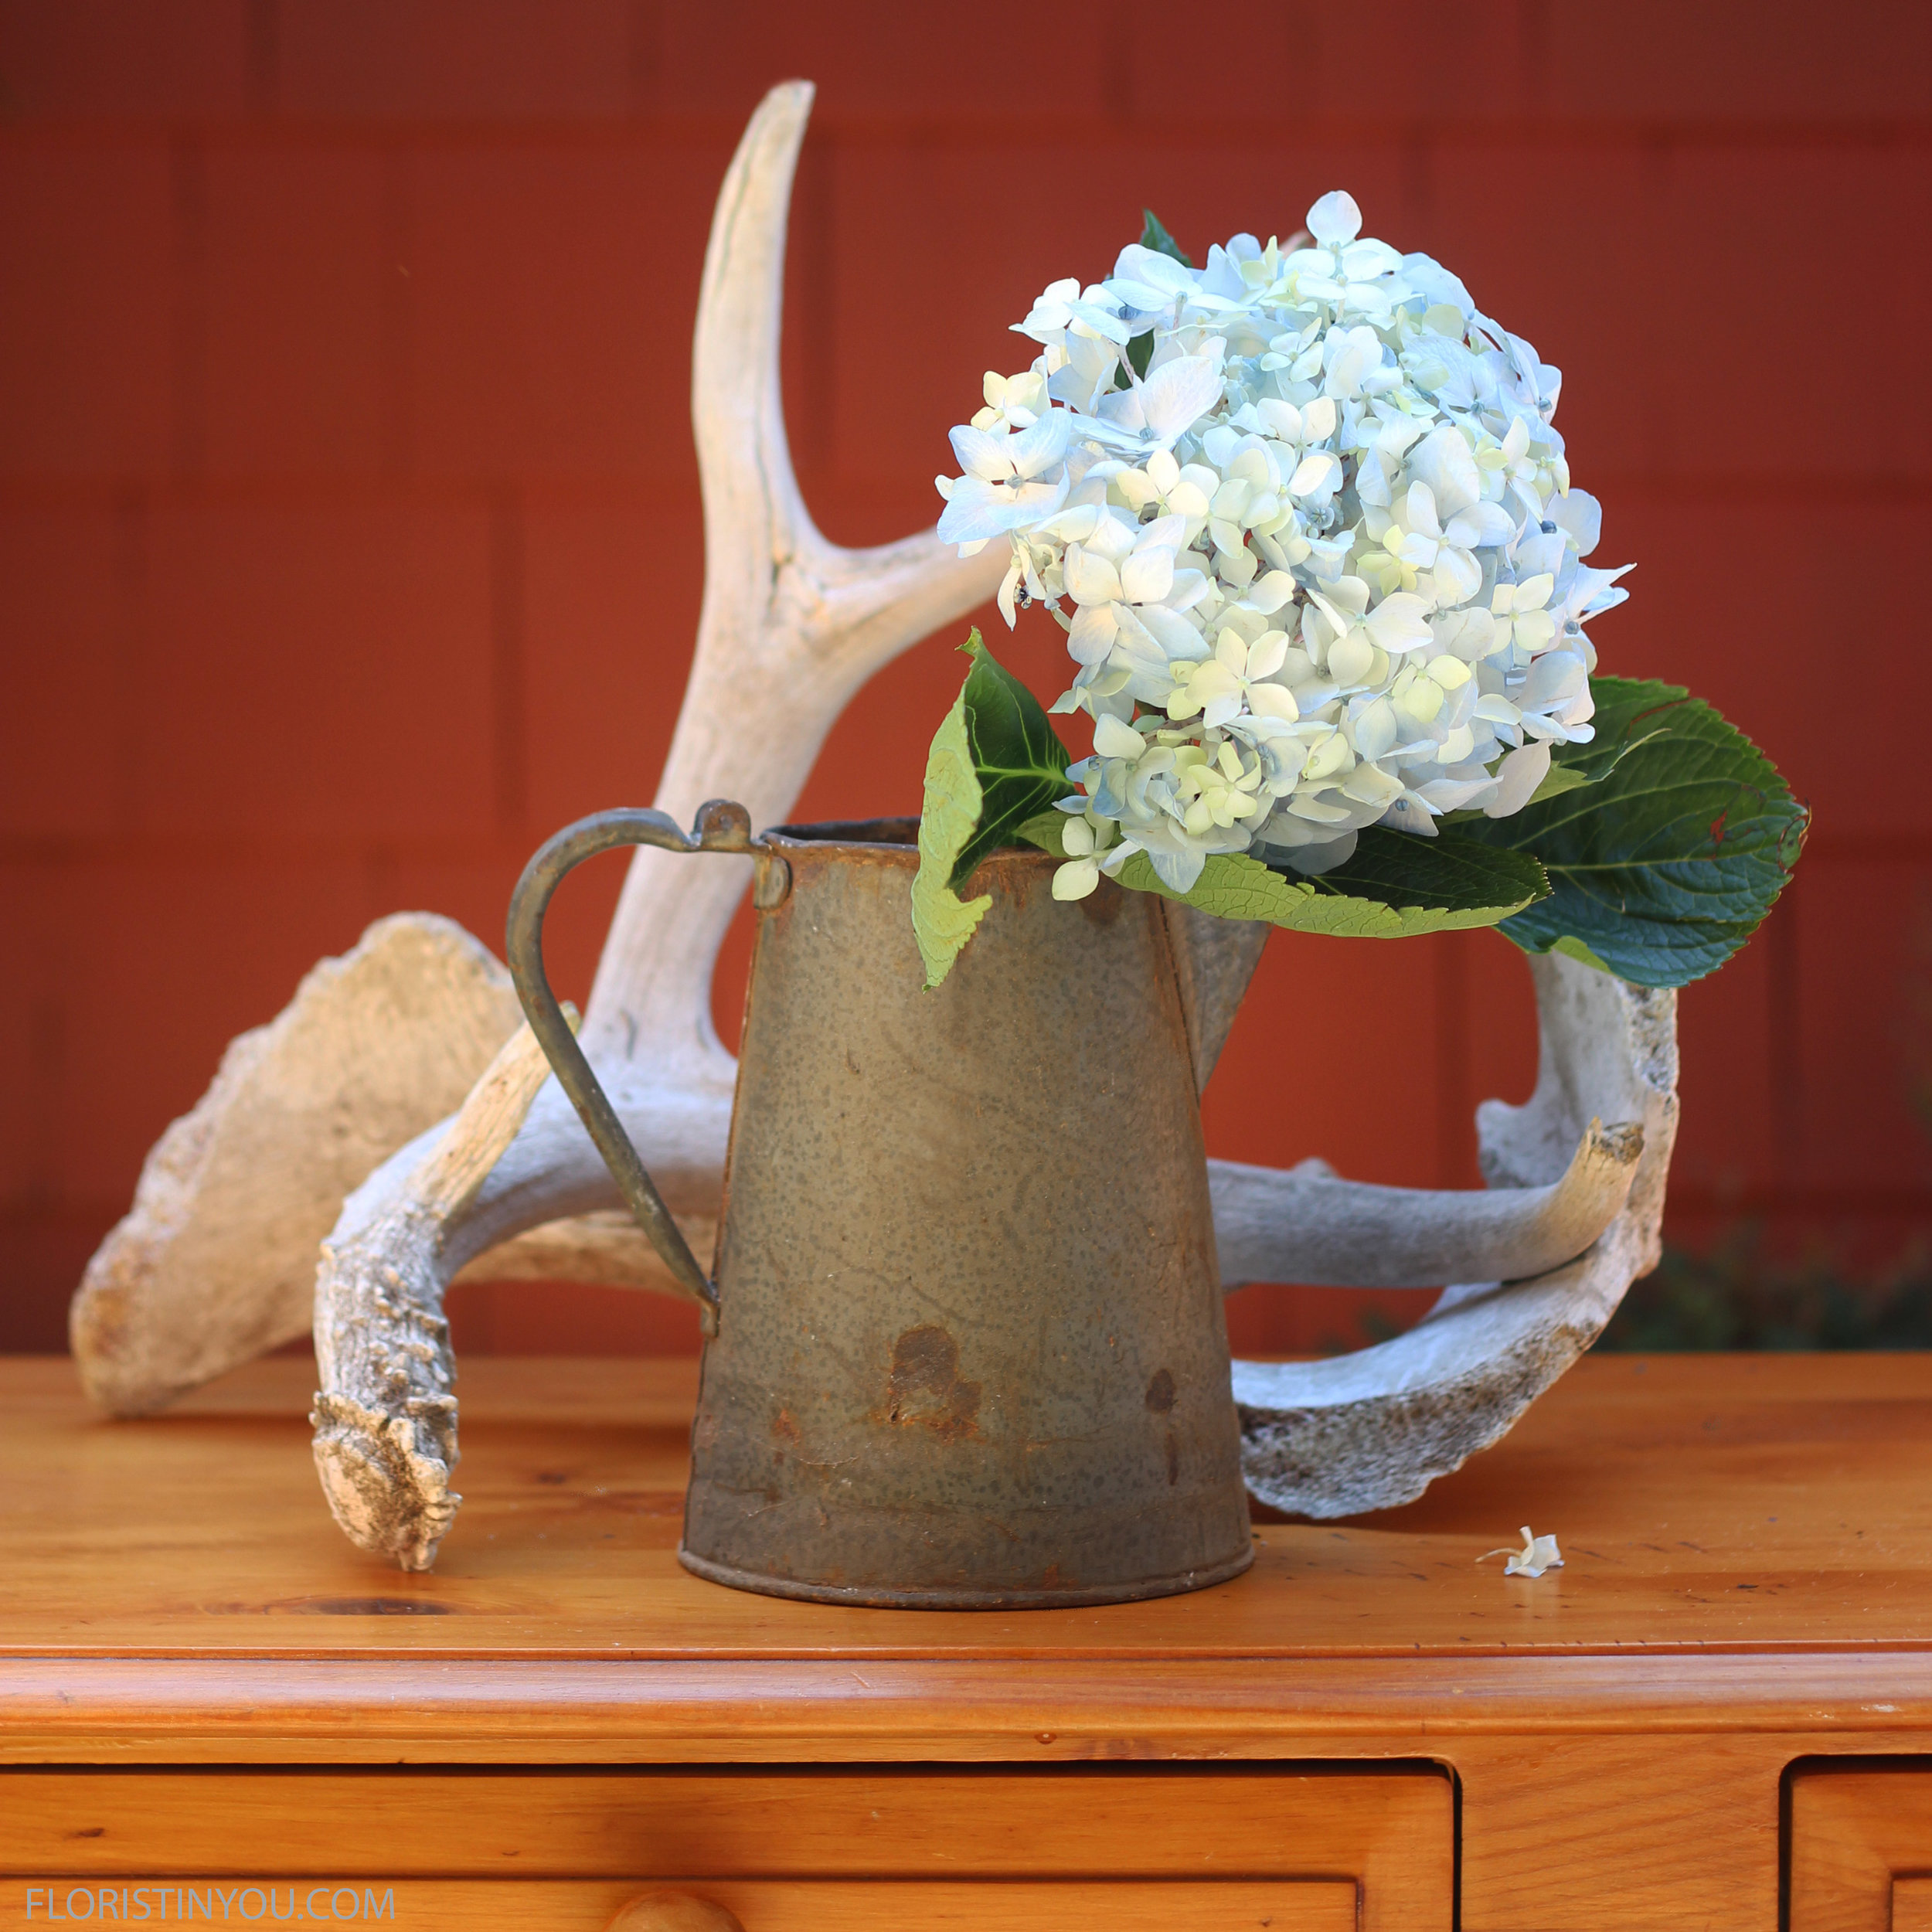 Start with the Hydrangea right front.